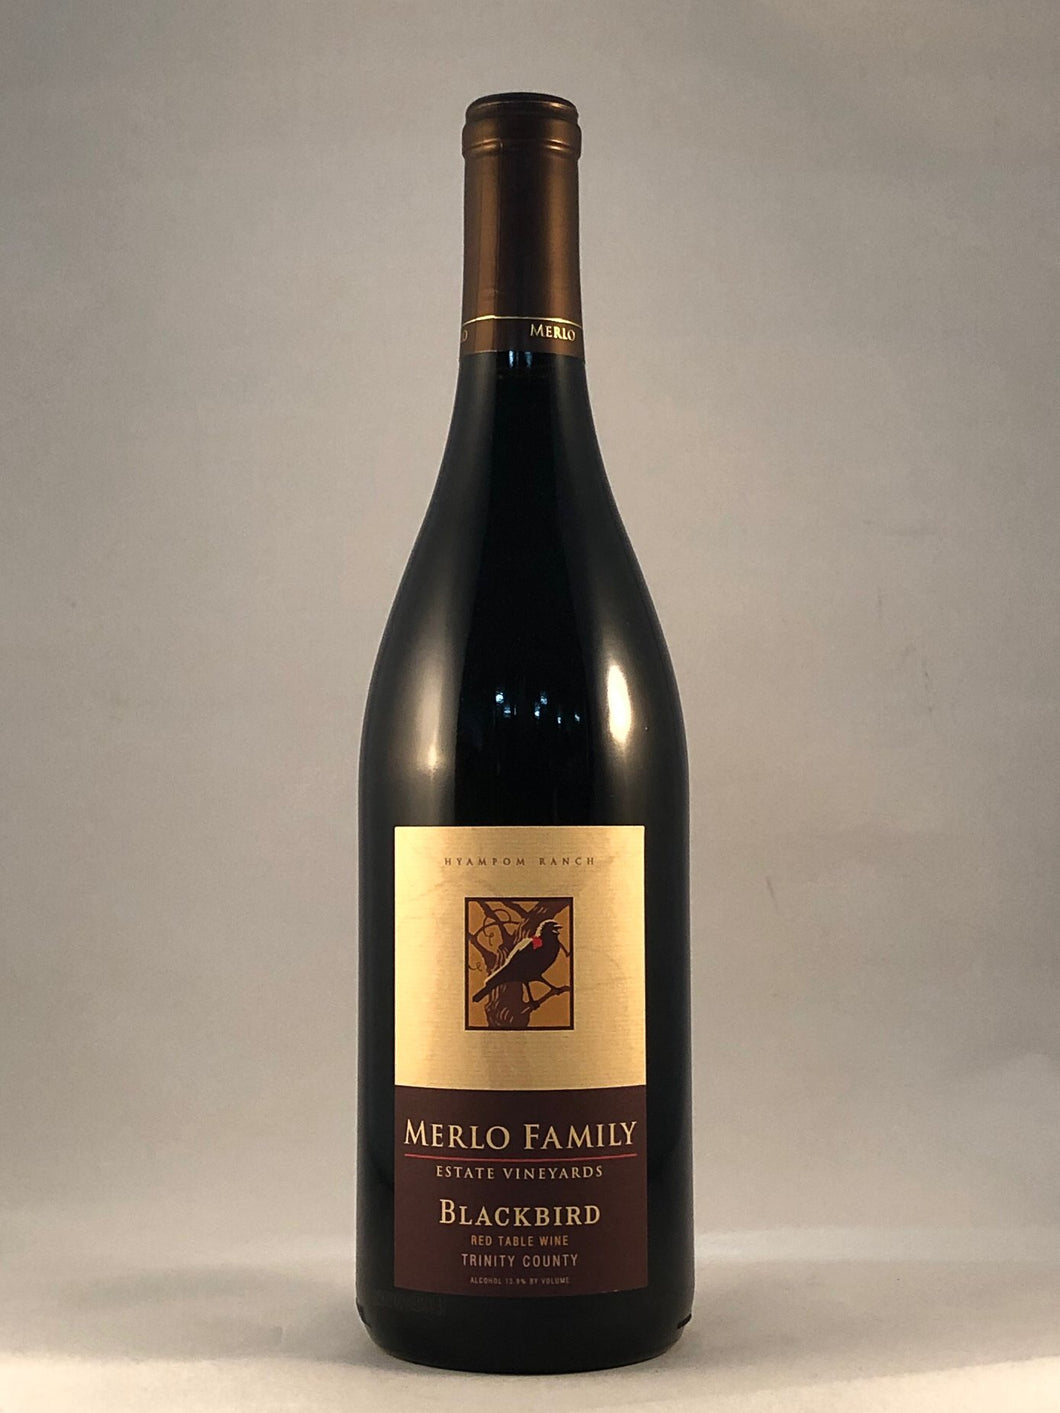 Merlo Family Estate Vineyards – Blackbird Red Table Wine